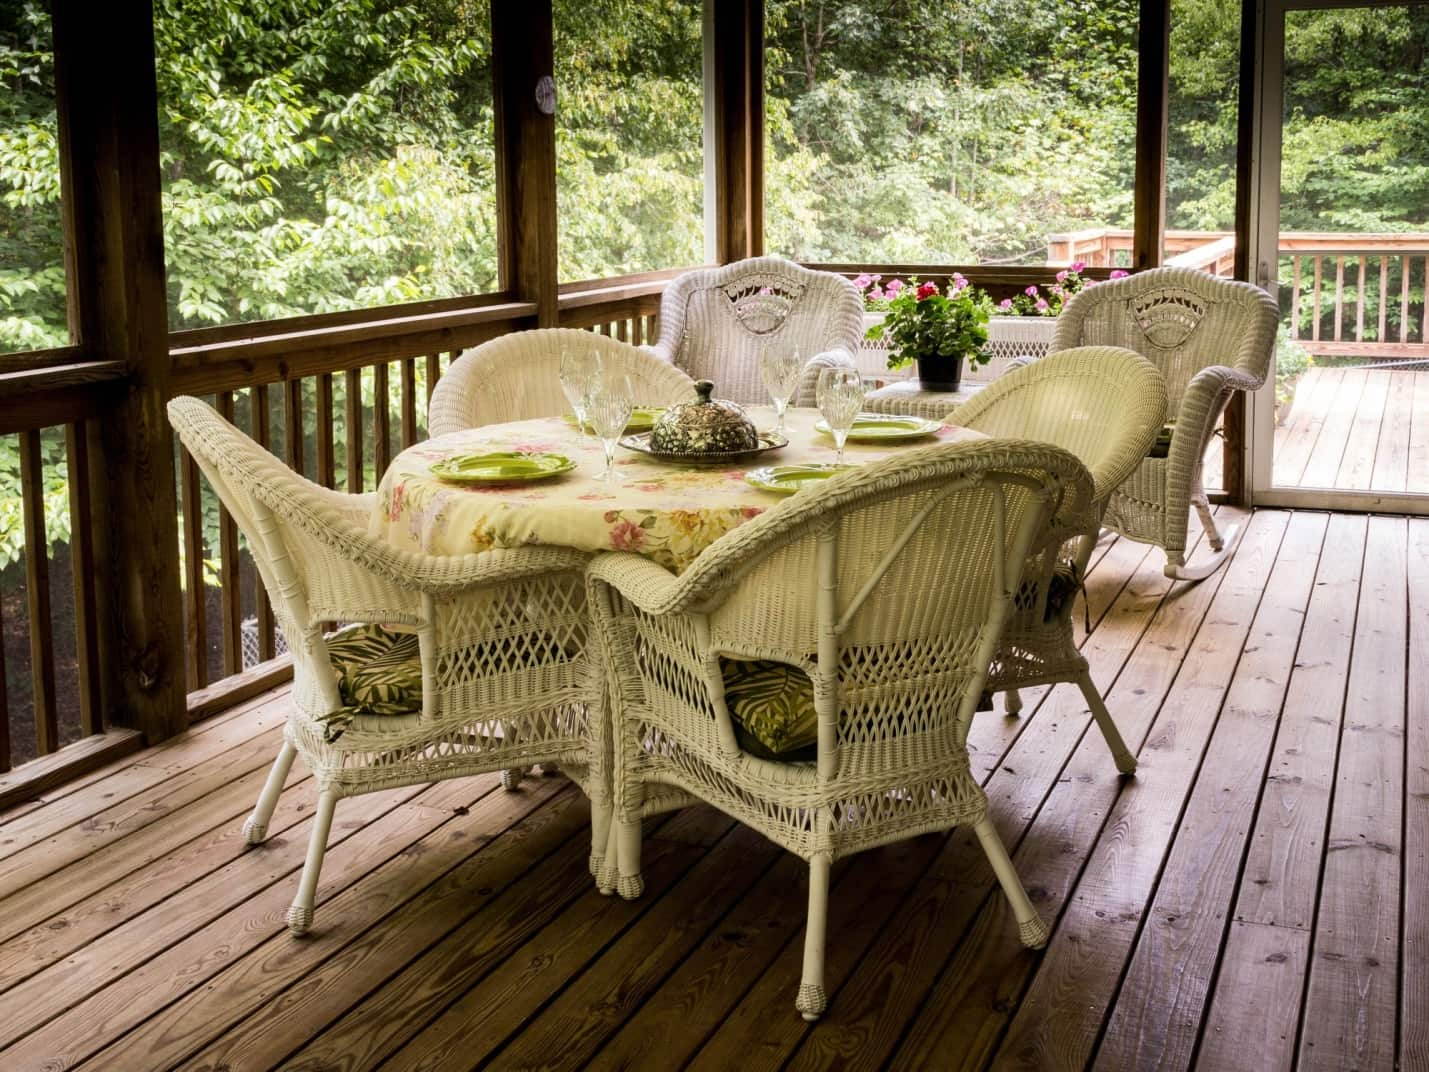 5 Unique Deck Ideas To Make The Most Of Your Small Yard